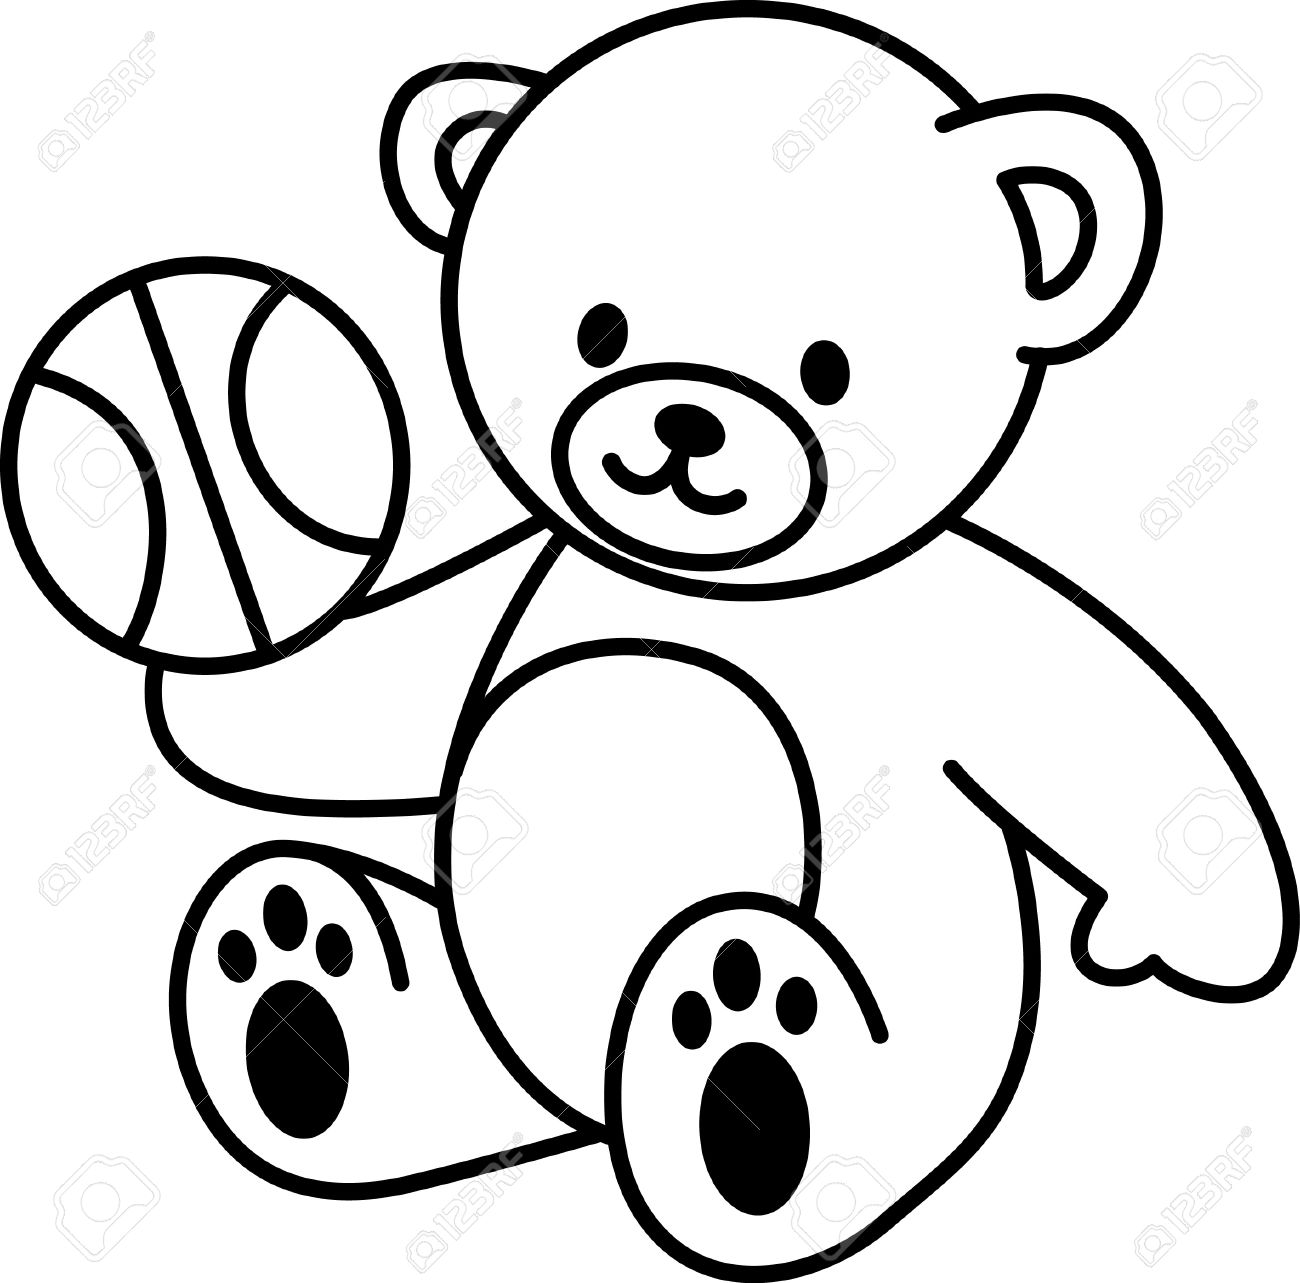 Uncategorized Cute Bears To Draw illustration of very cute teddy bear with basketbal royalty free stock vector 18936721